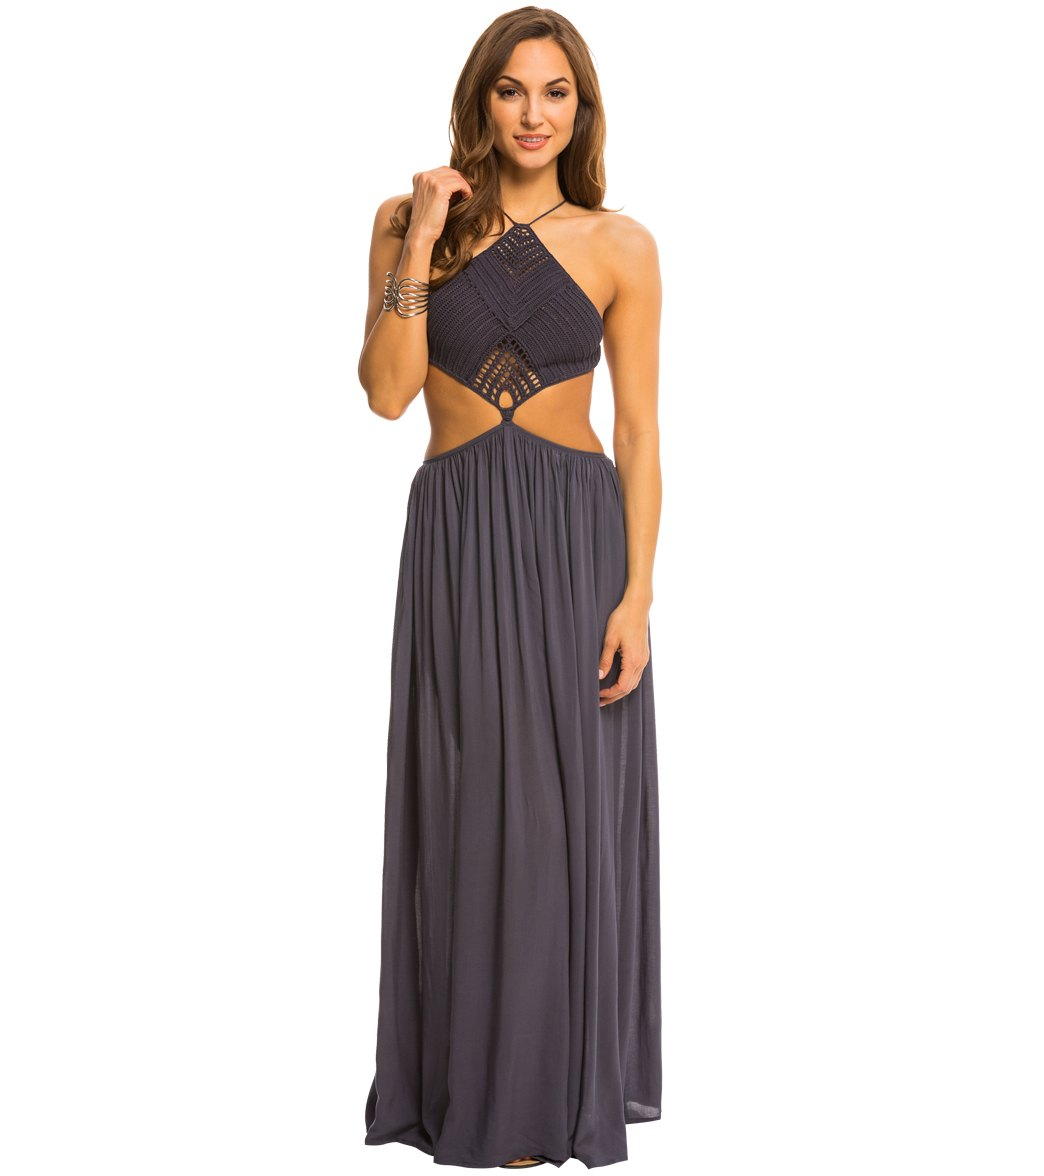 0e22f60bcf733 Indah Need Want Love Revel Solid Crochet Halter Cutaway Cover Up Maxi Dress  at SwimOutlet.com - Free Shipping